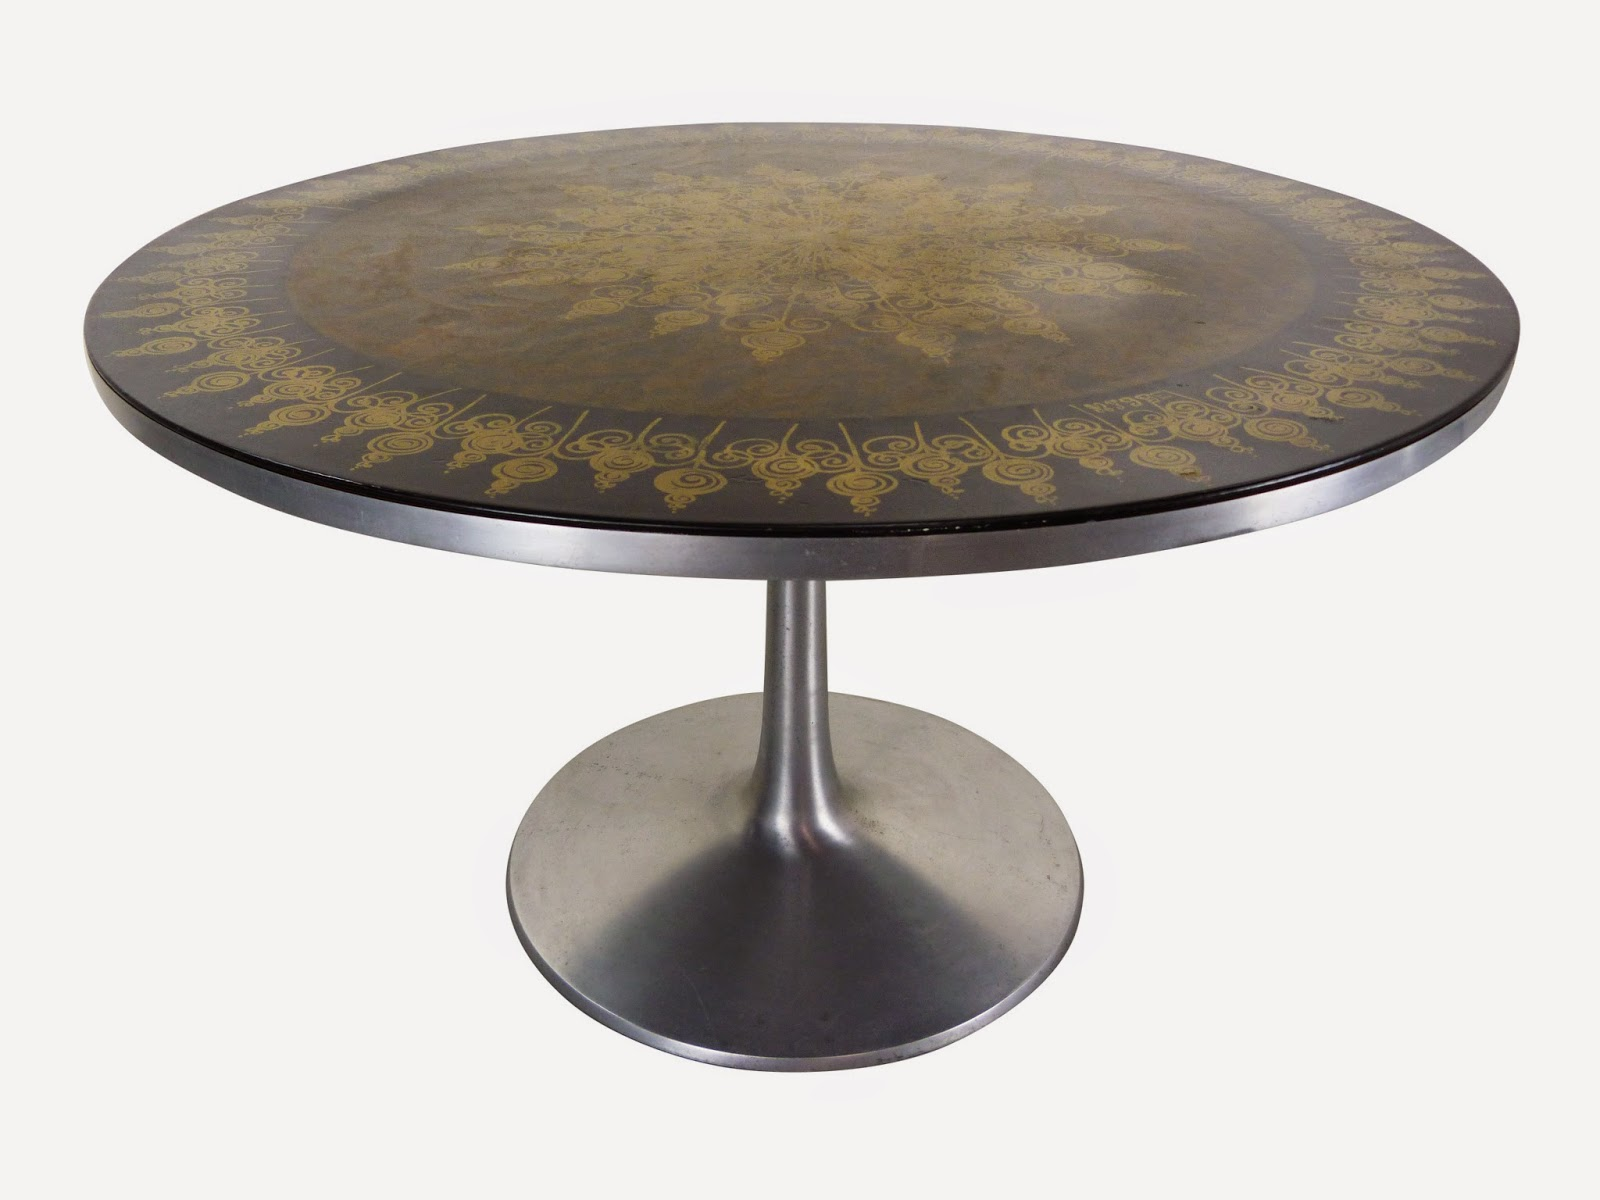 Cado Mygee Danish Modern Painted Dining Table Img 2